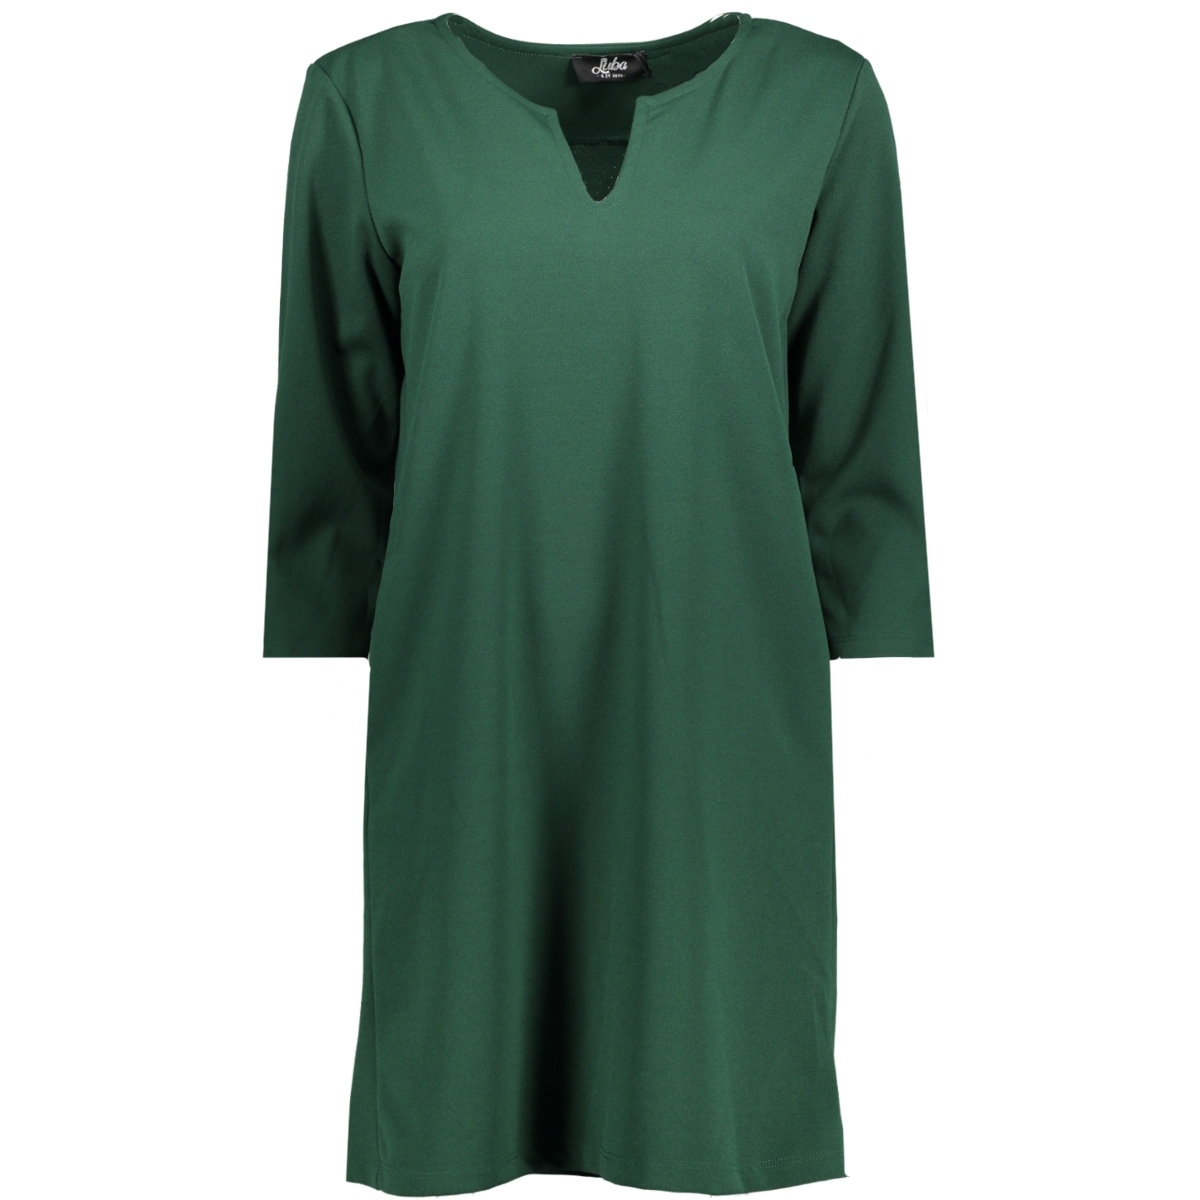 nikita dress pine green luba jurk pine green